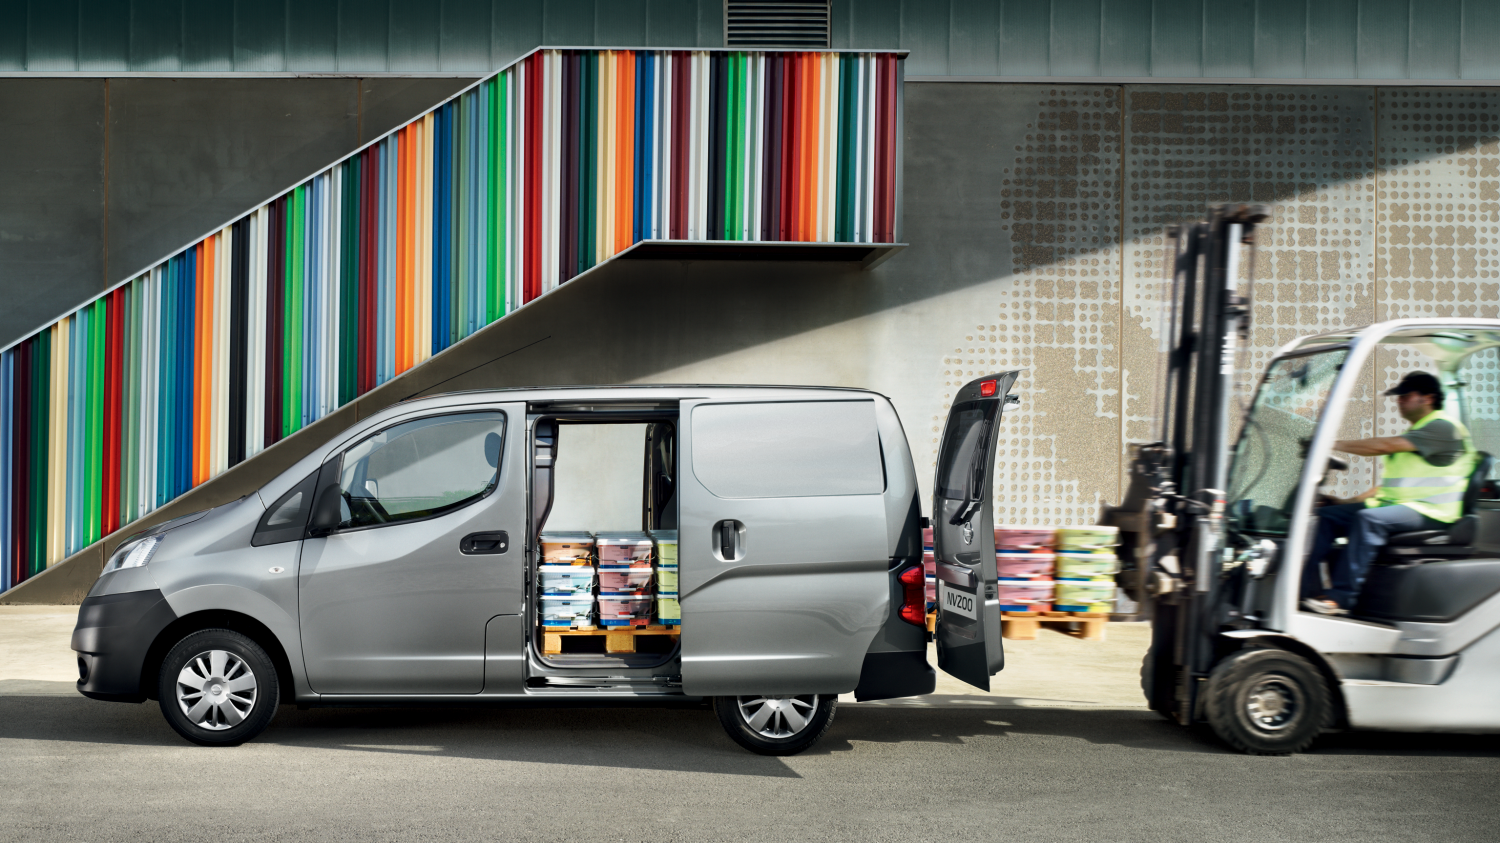 Nissan NV200 Van exterior cutaway showing interior